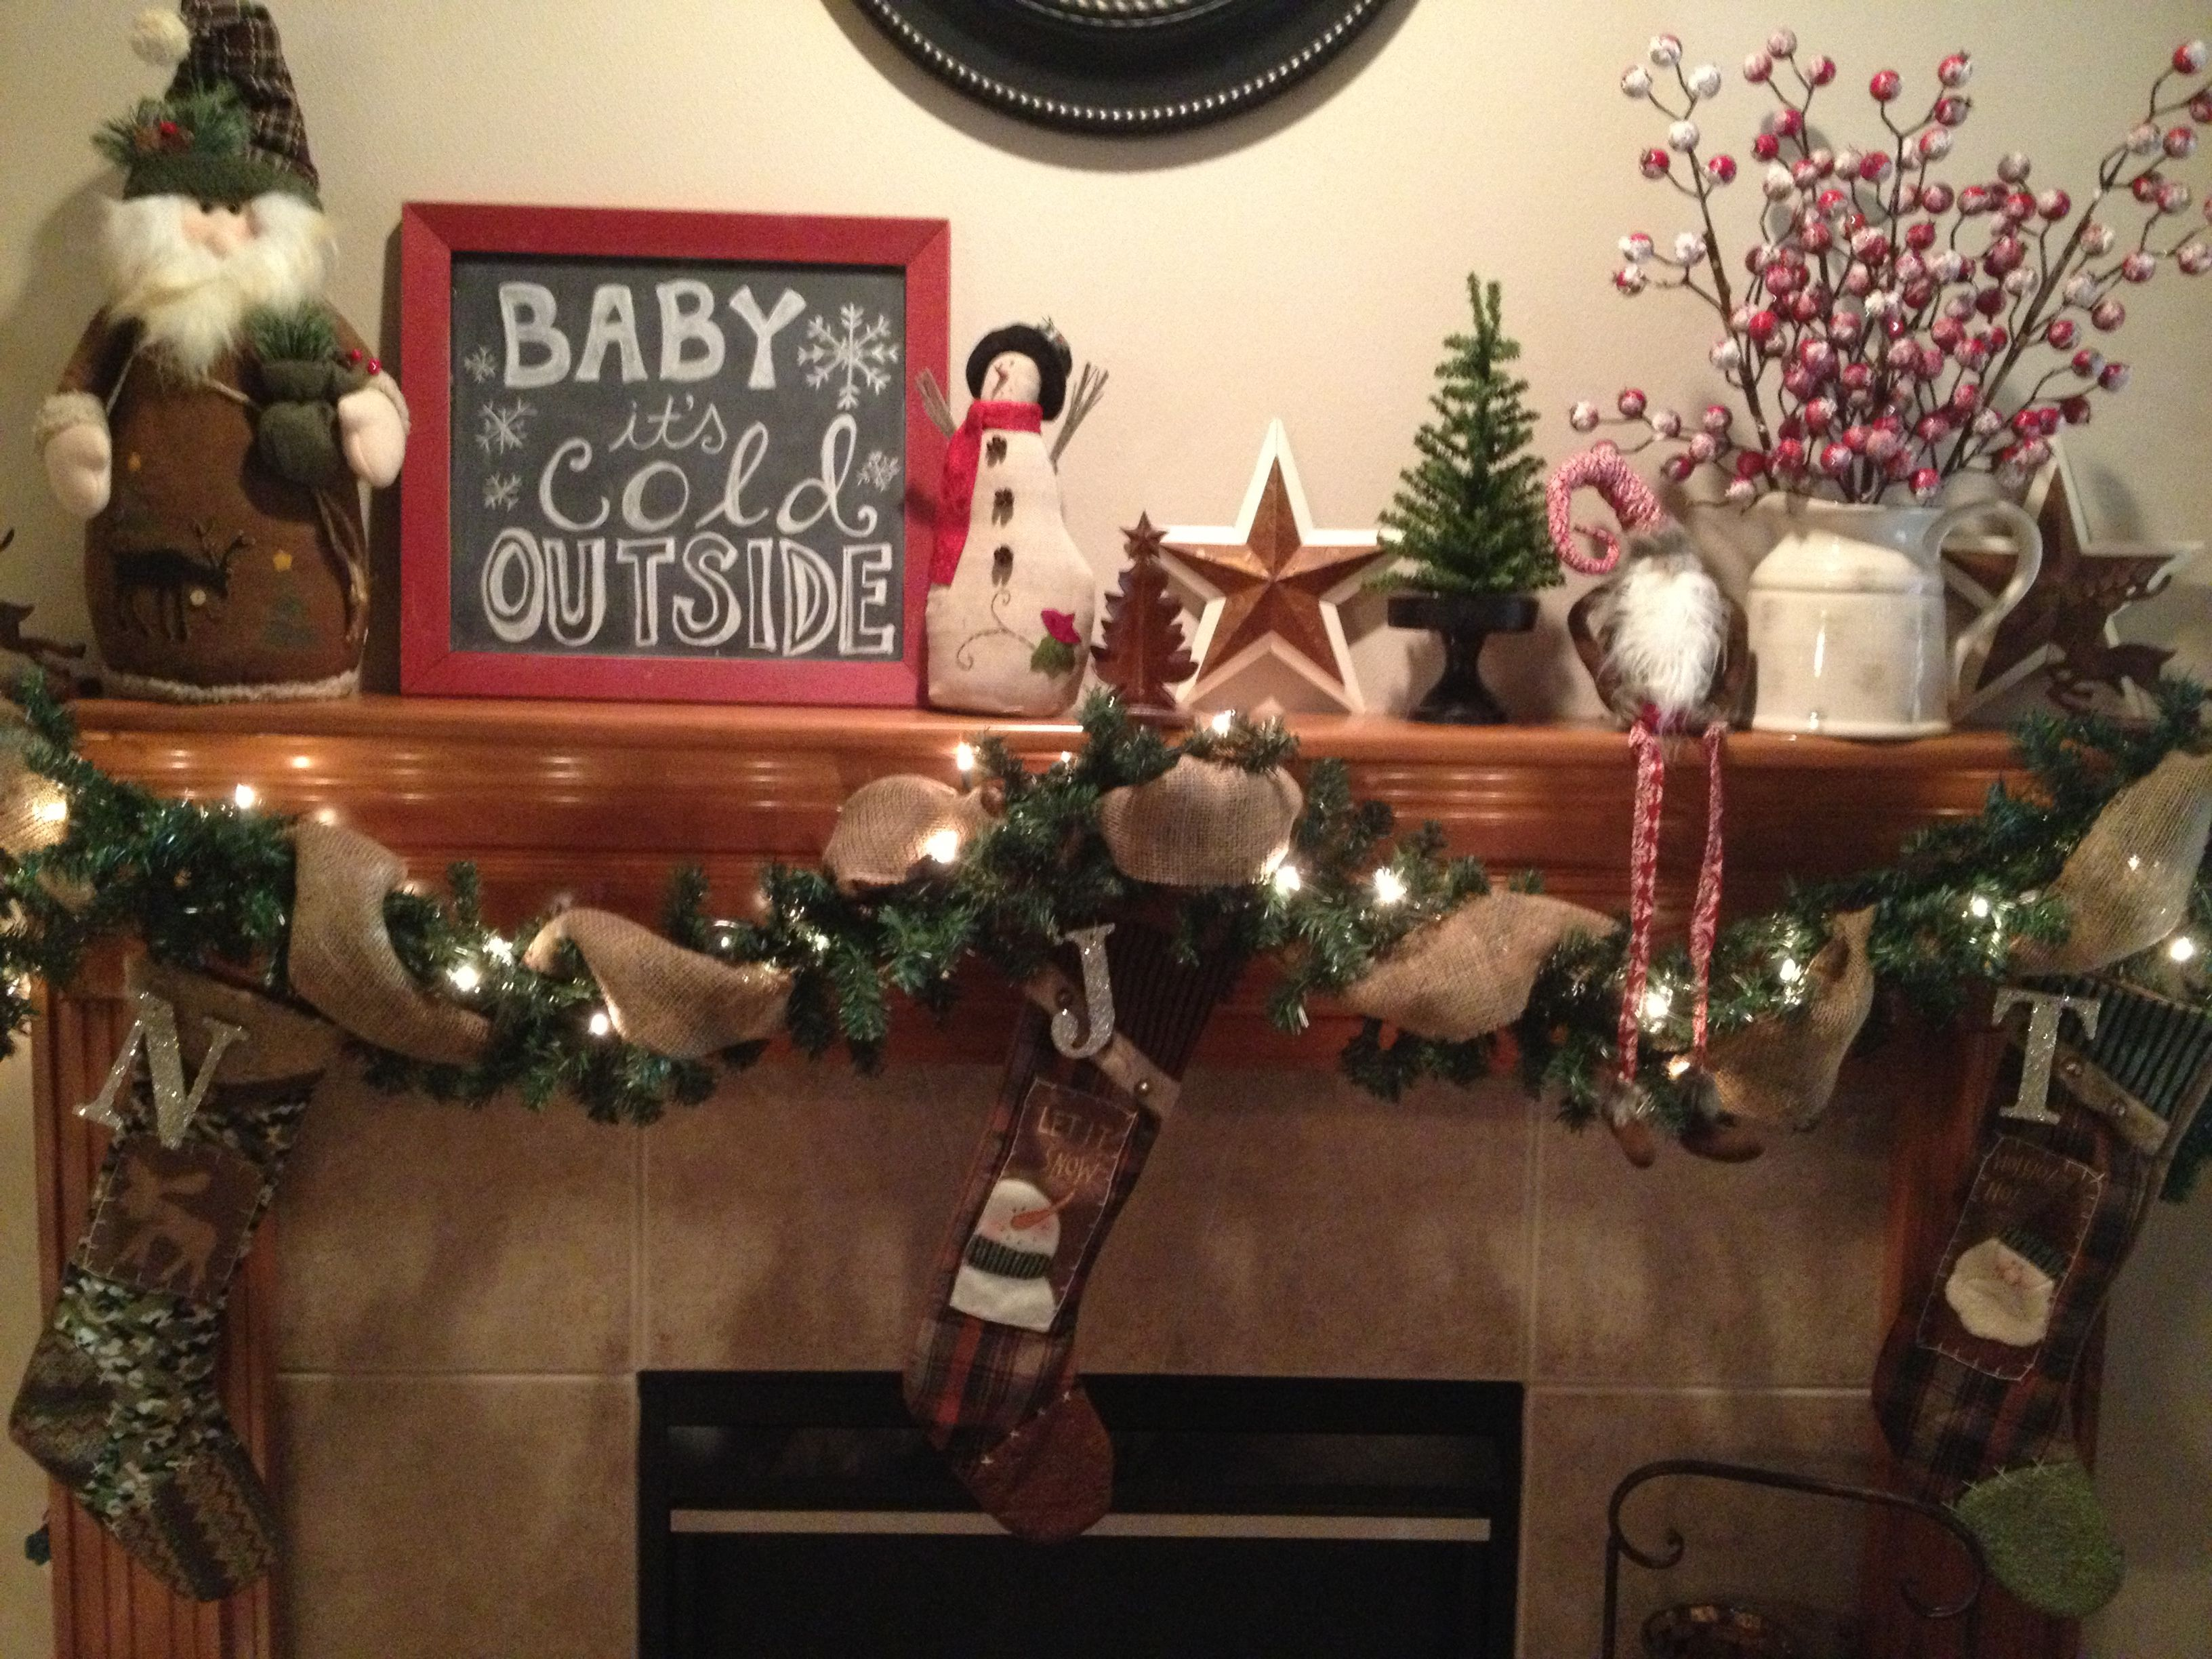 Rustic Christmas Mantel Decor Using Old Chalkboard To Display